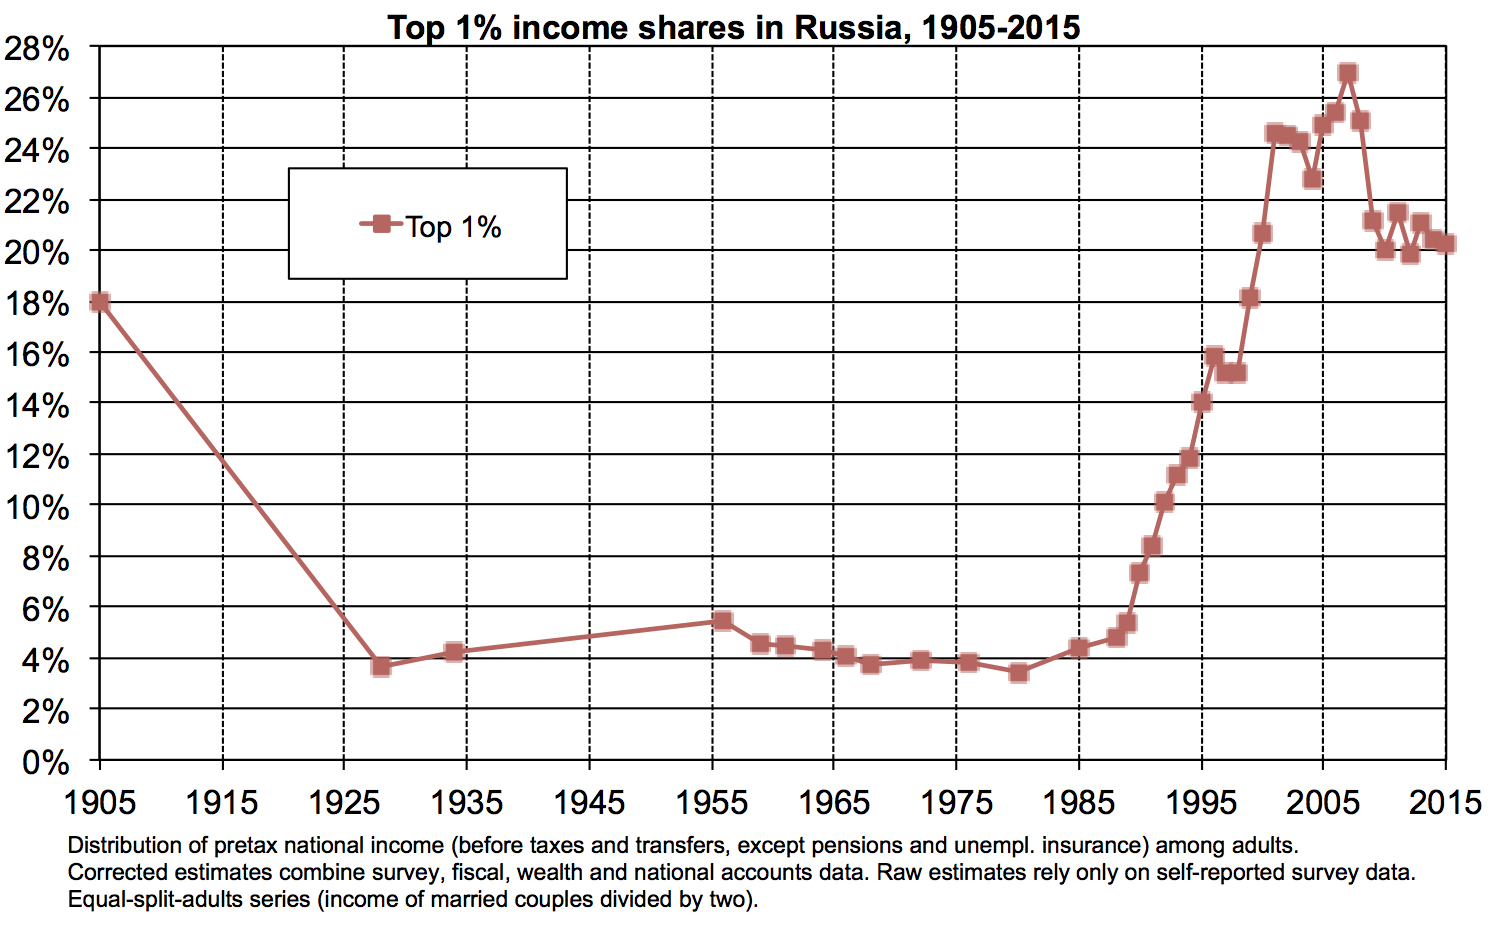 How did the market begin in the USSR